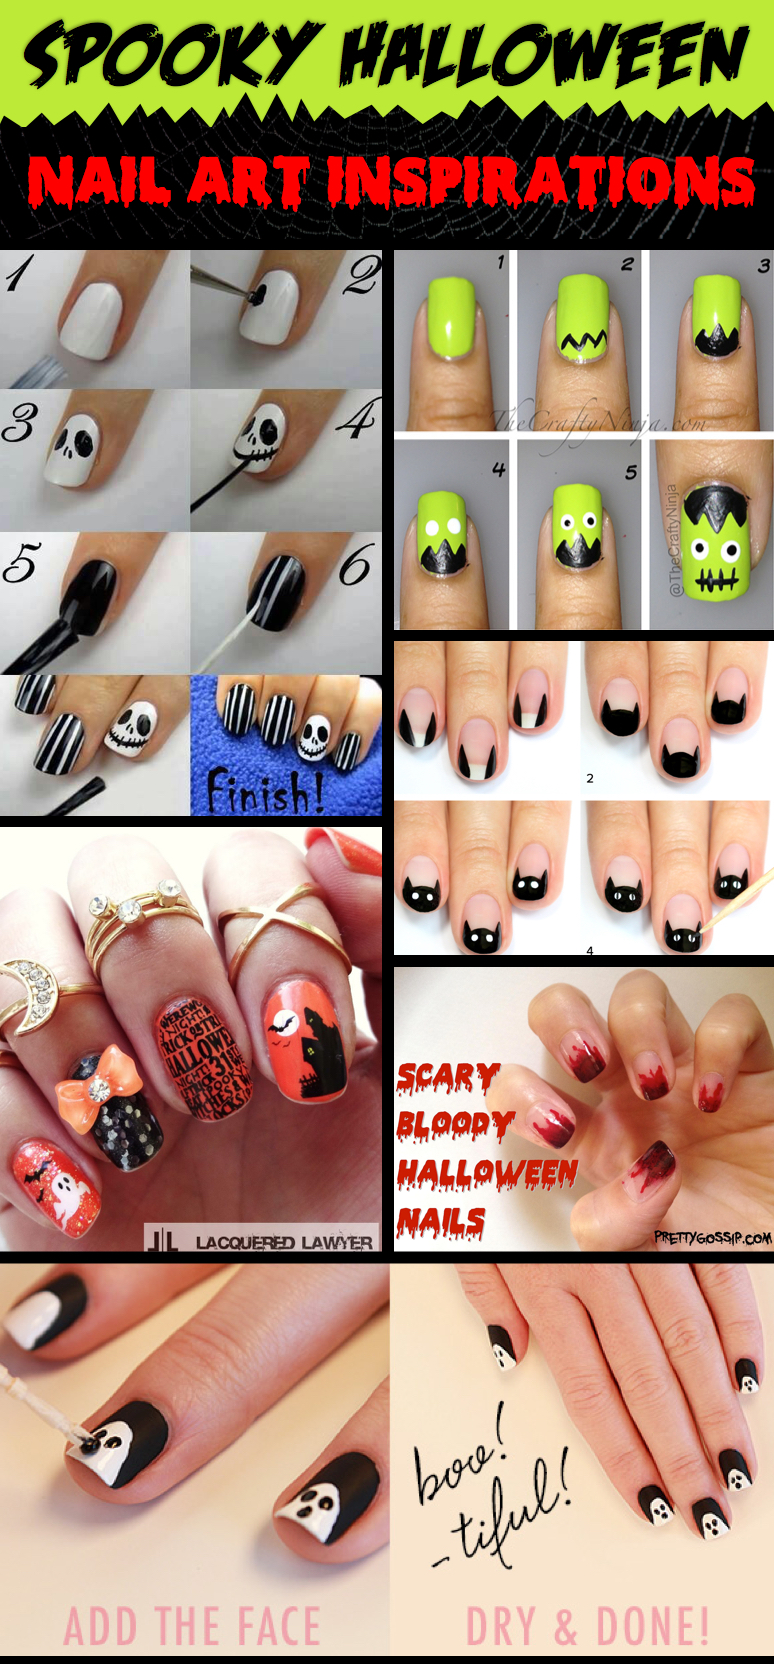 40 best halloween nail art inspirations for 2017 30 gorgeous and spooky halloween nail art inspirations that will blow your mind prinsesfo Gallery